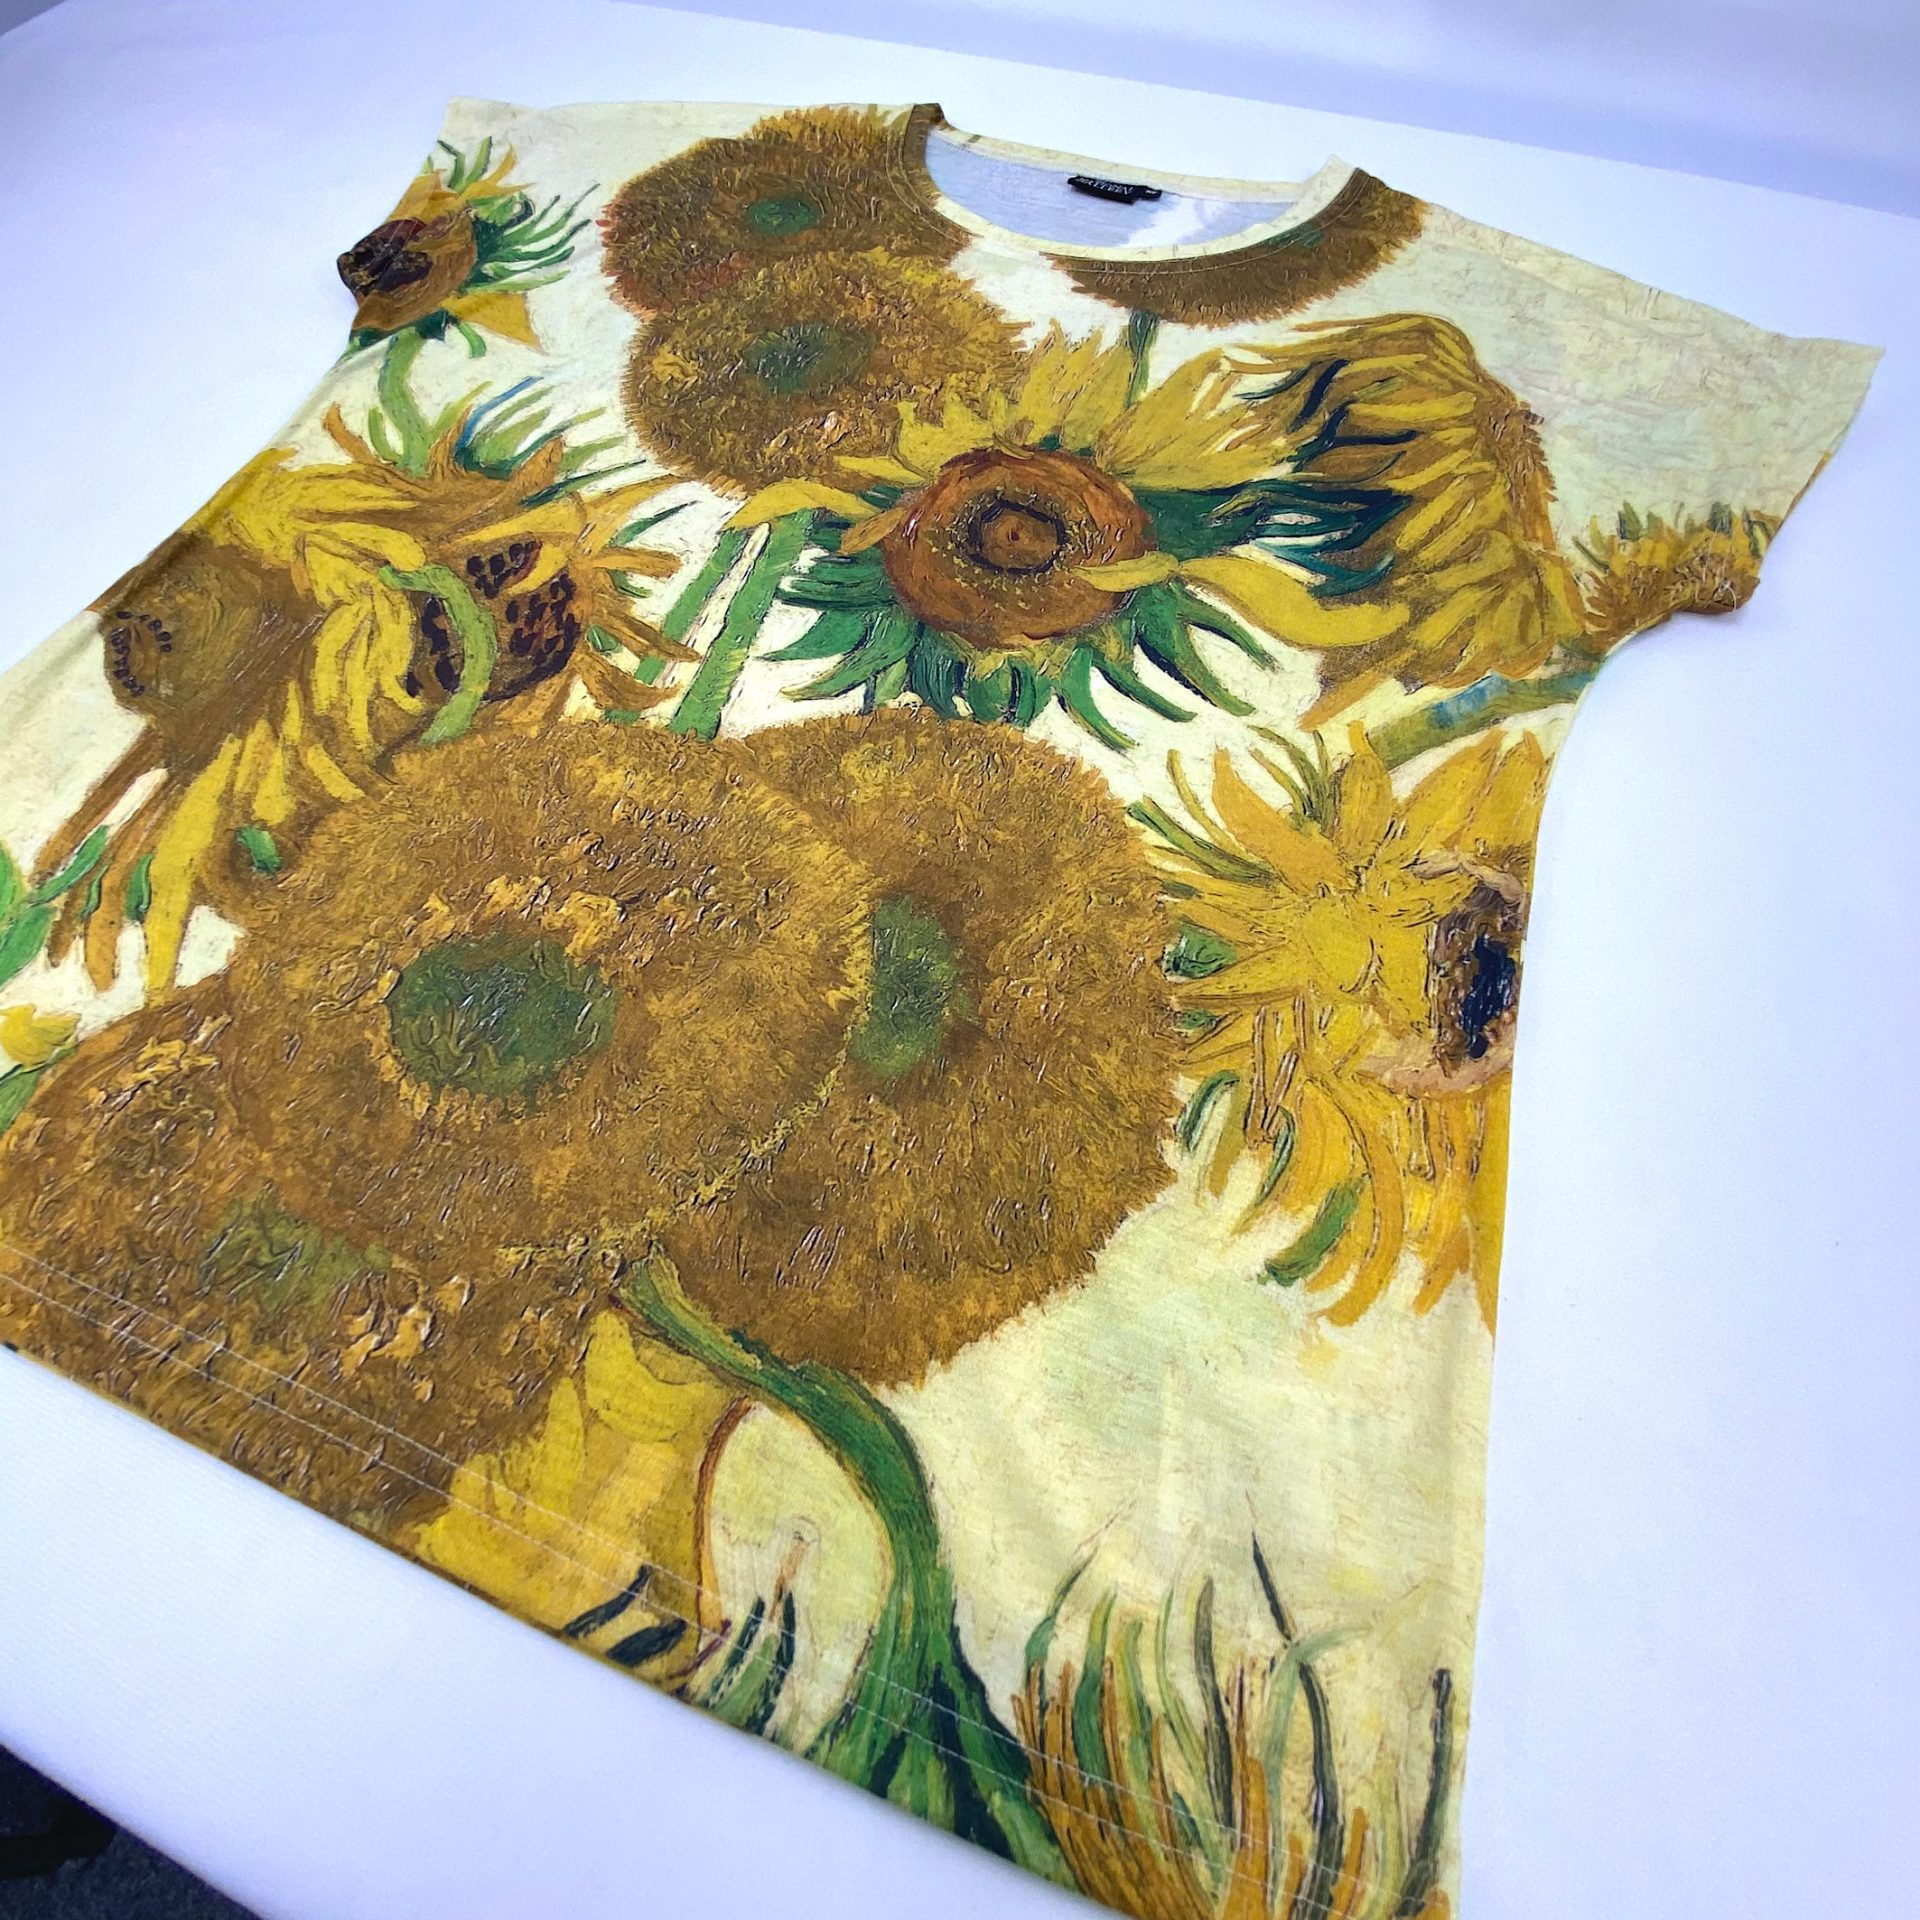 Sunflowers printed for the National Gallery by Paul Bristow